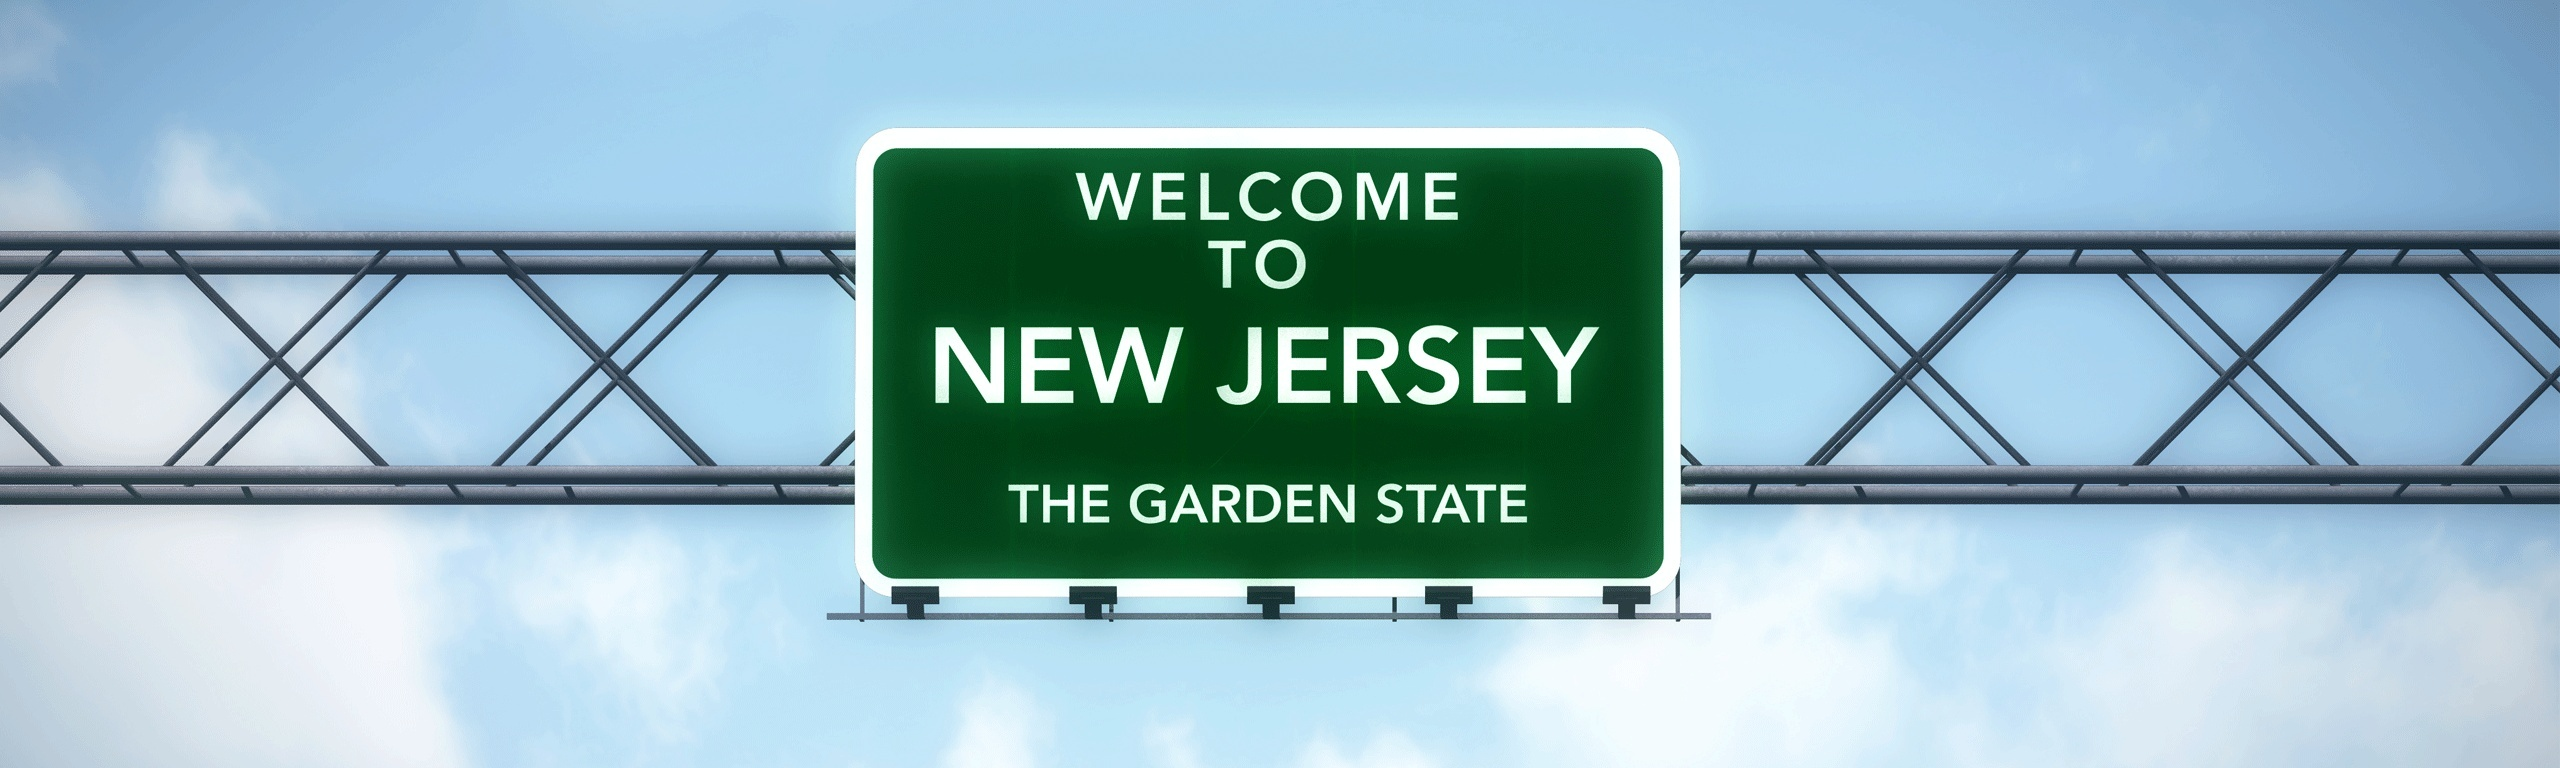 hero-graphic-Cannabis Careers in Emerging Markets: New Jersey